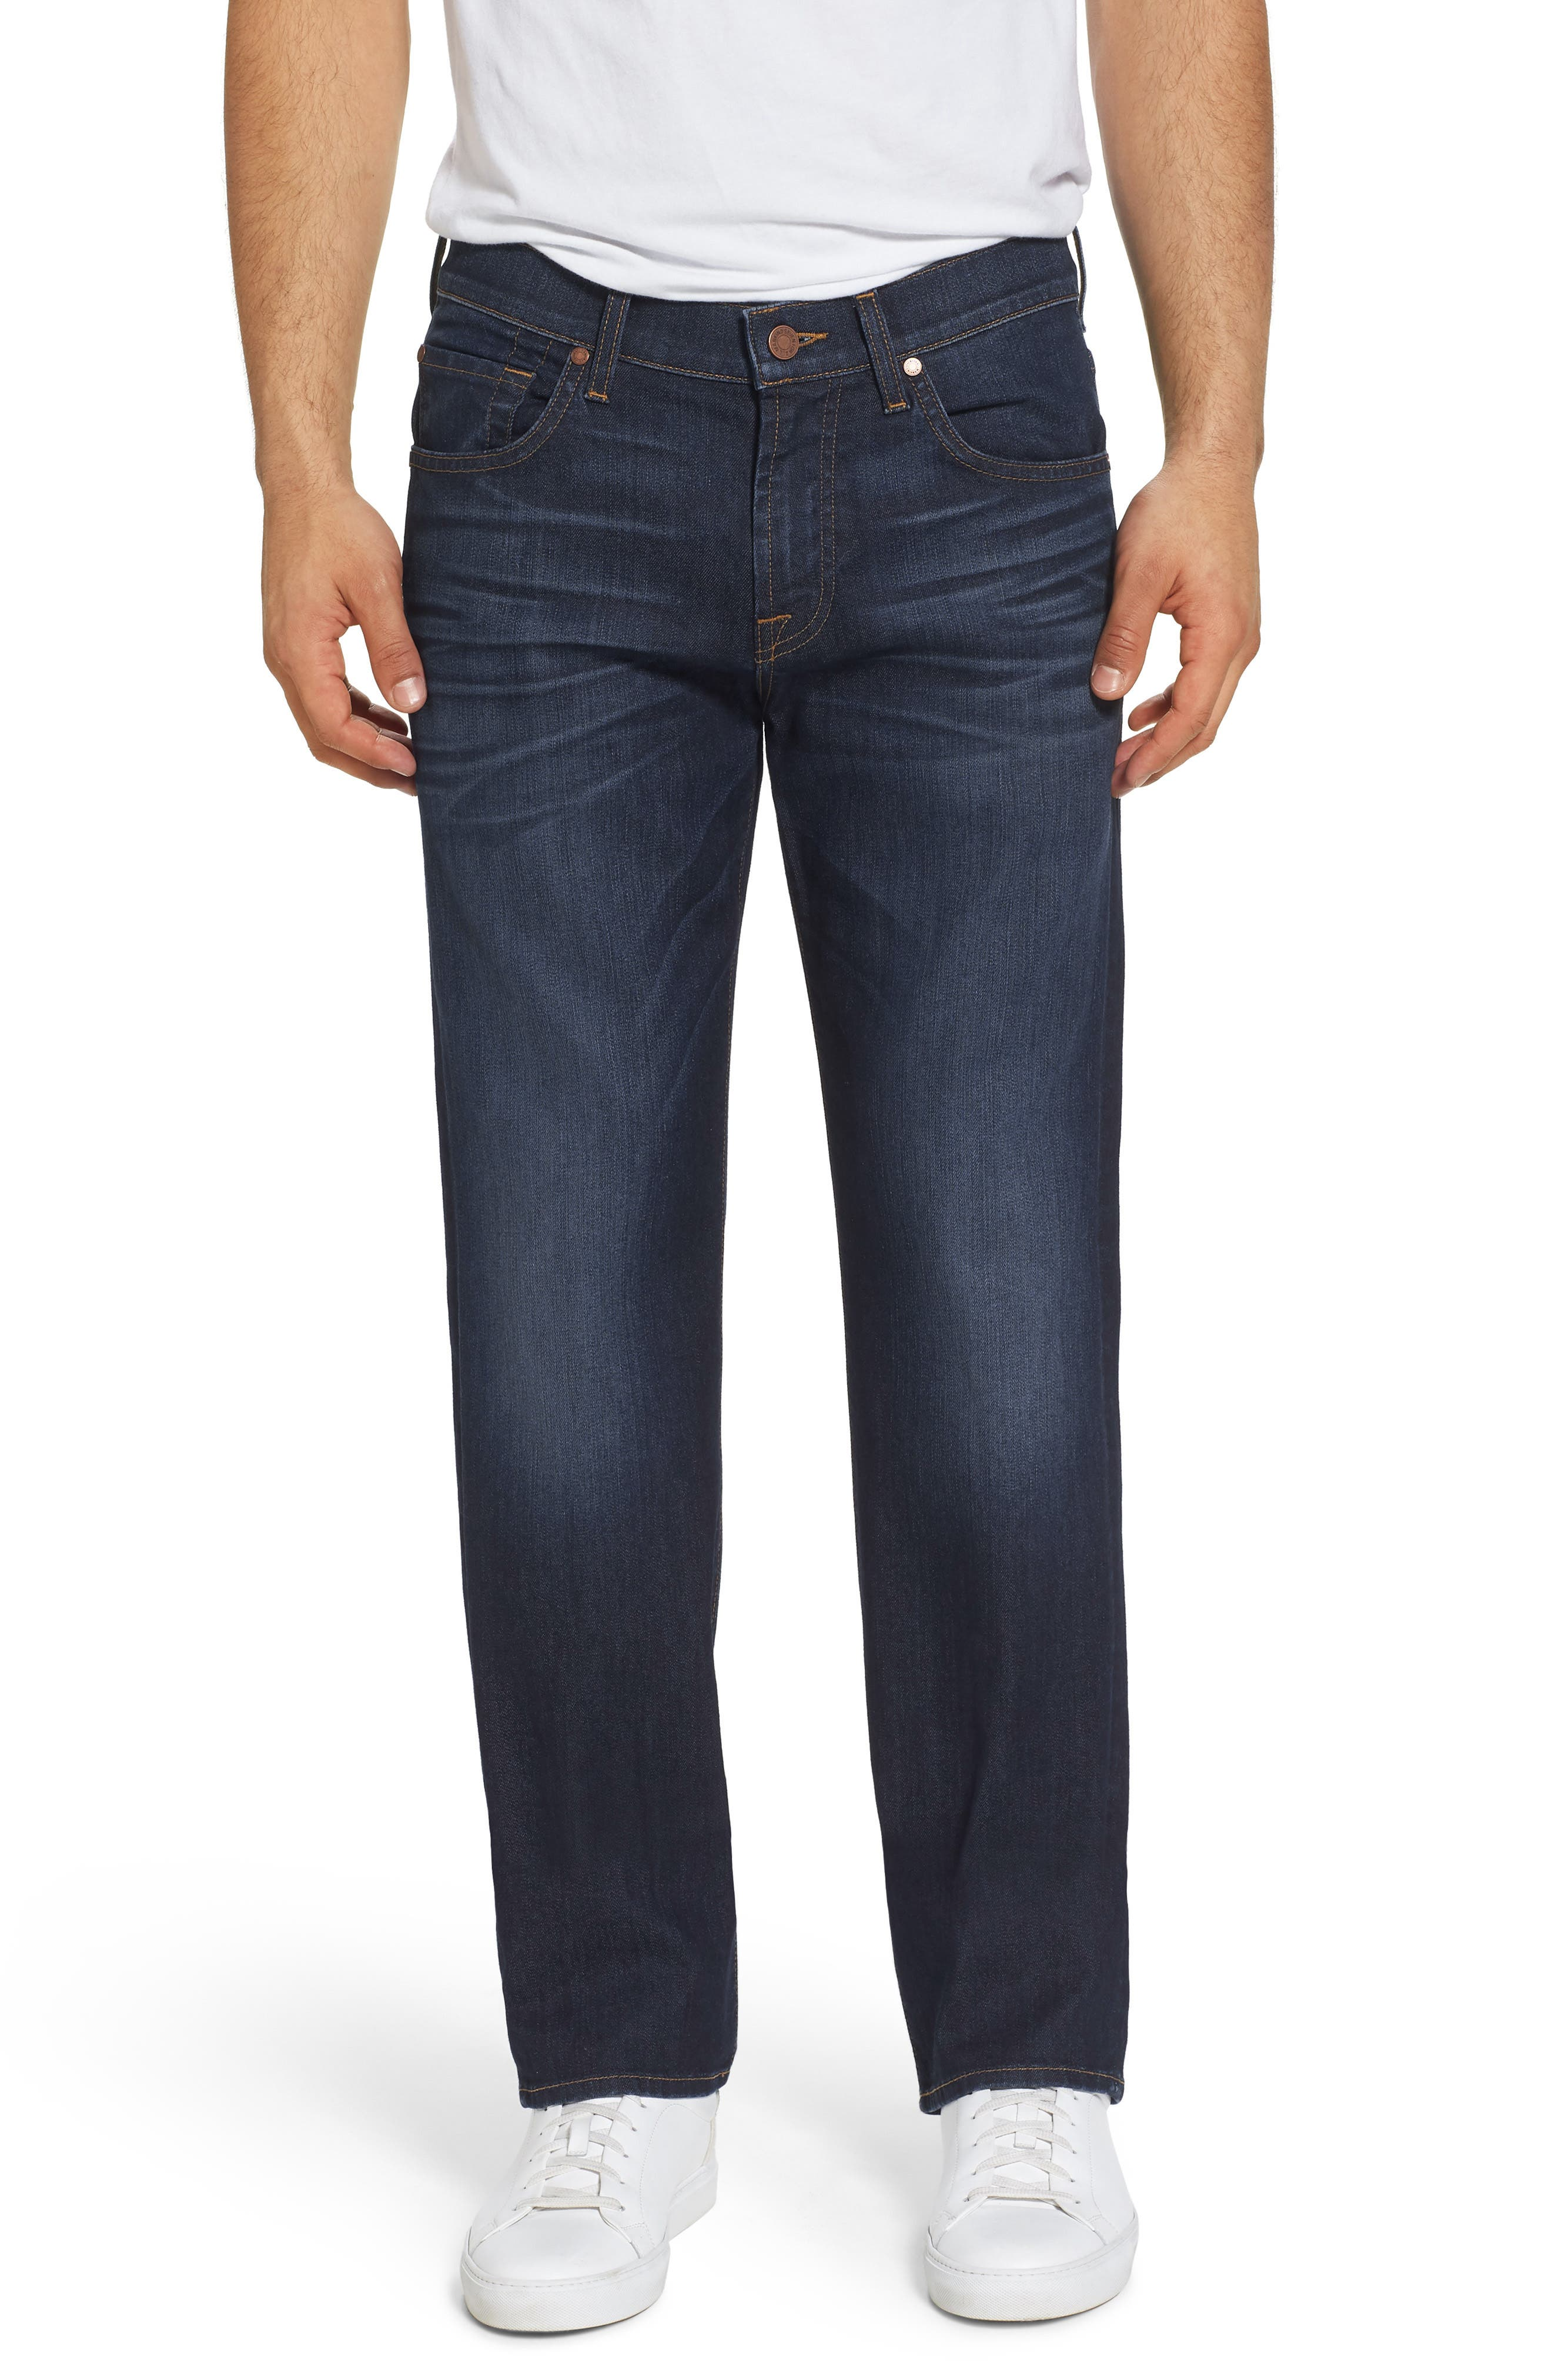 Airweft Austyn Relaxed Straight Leg Jeans,                             Main thumbnail 1, color,                             400